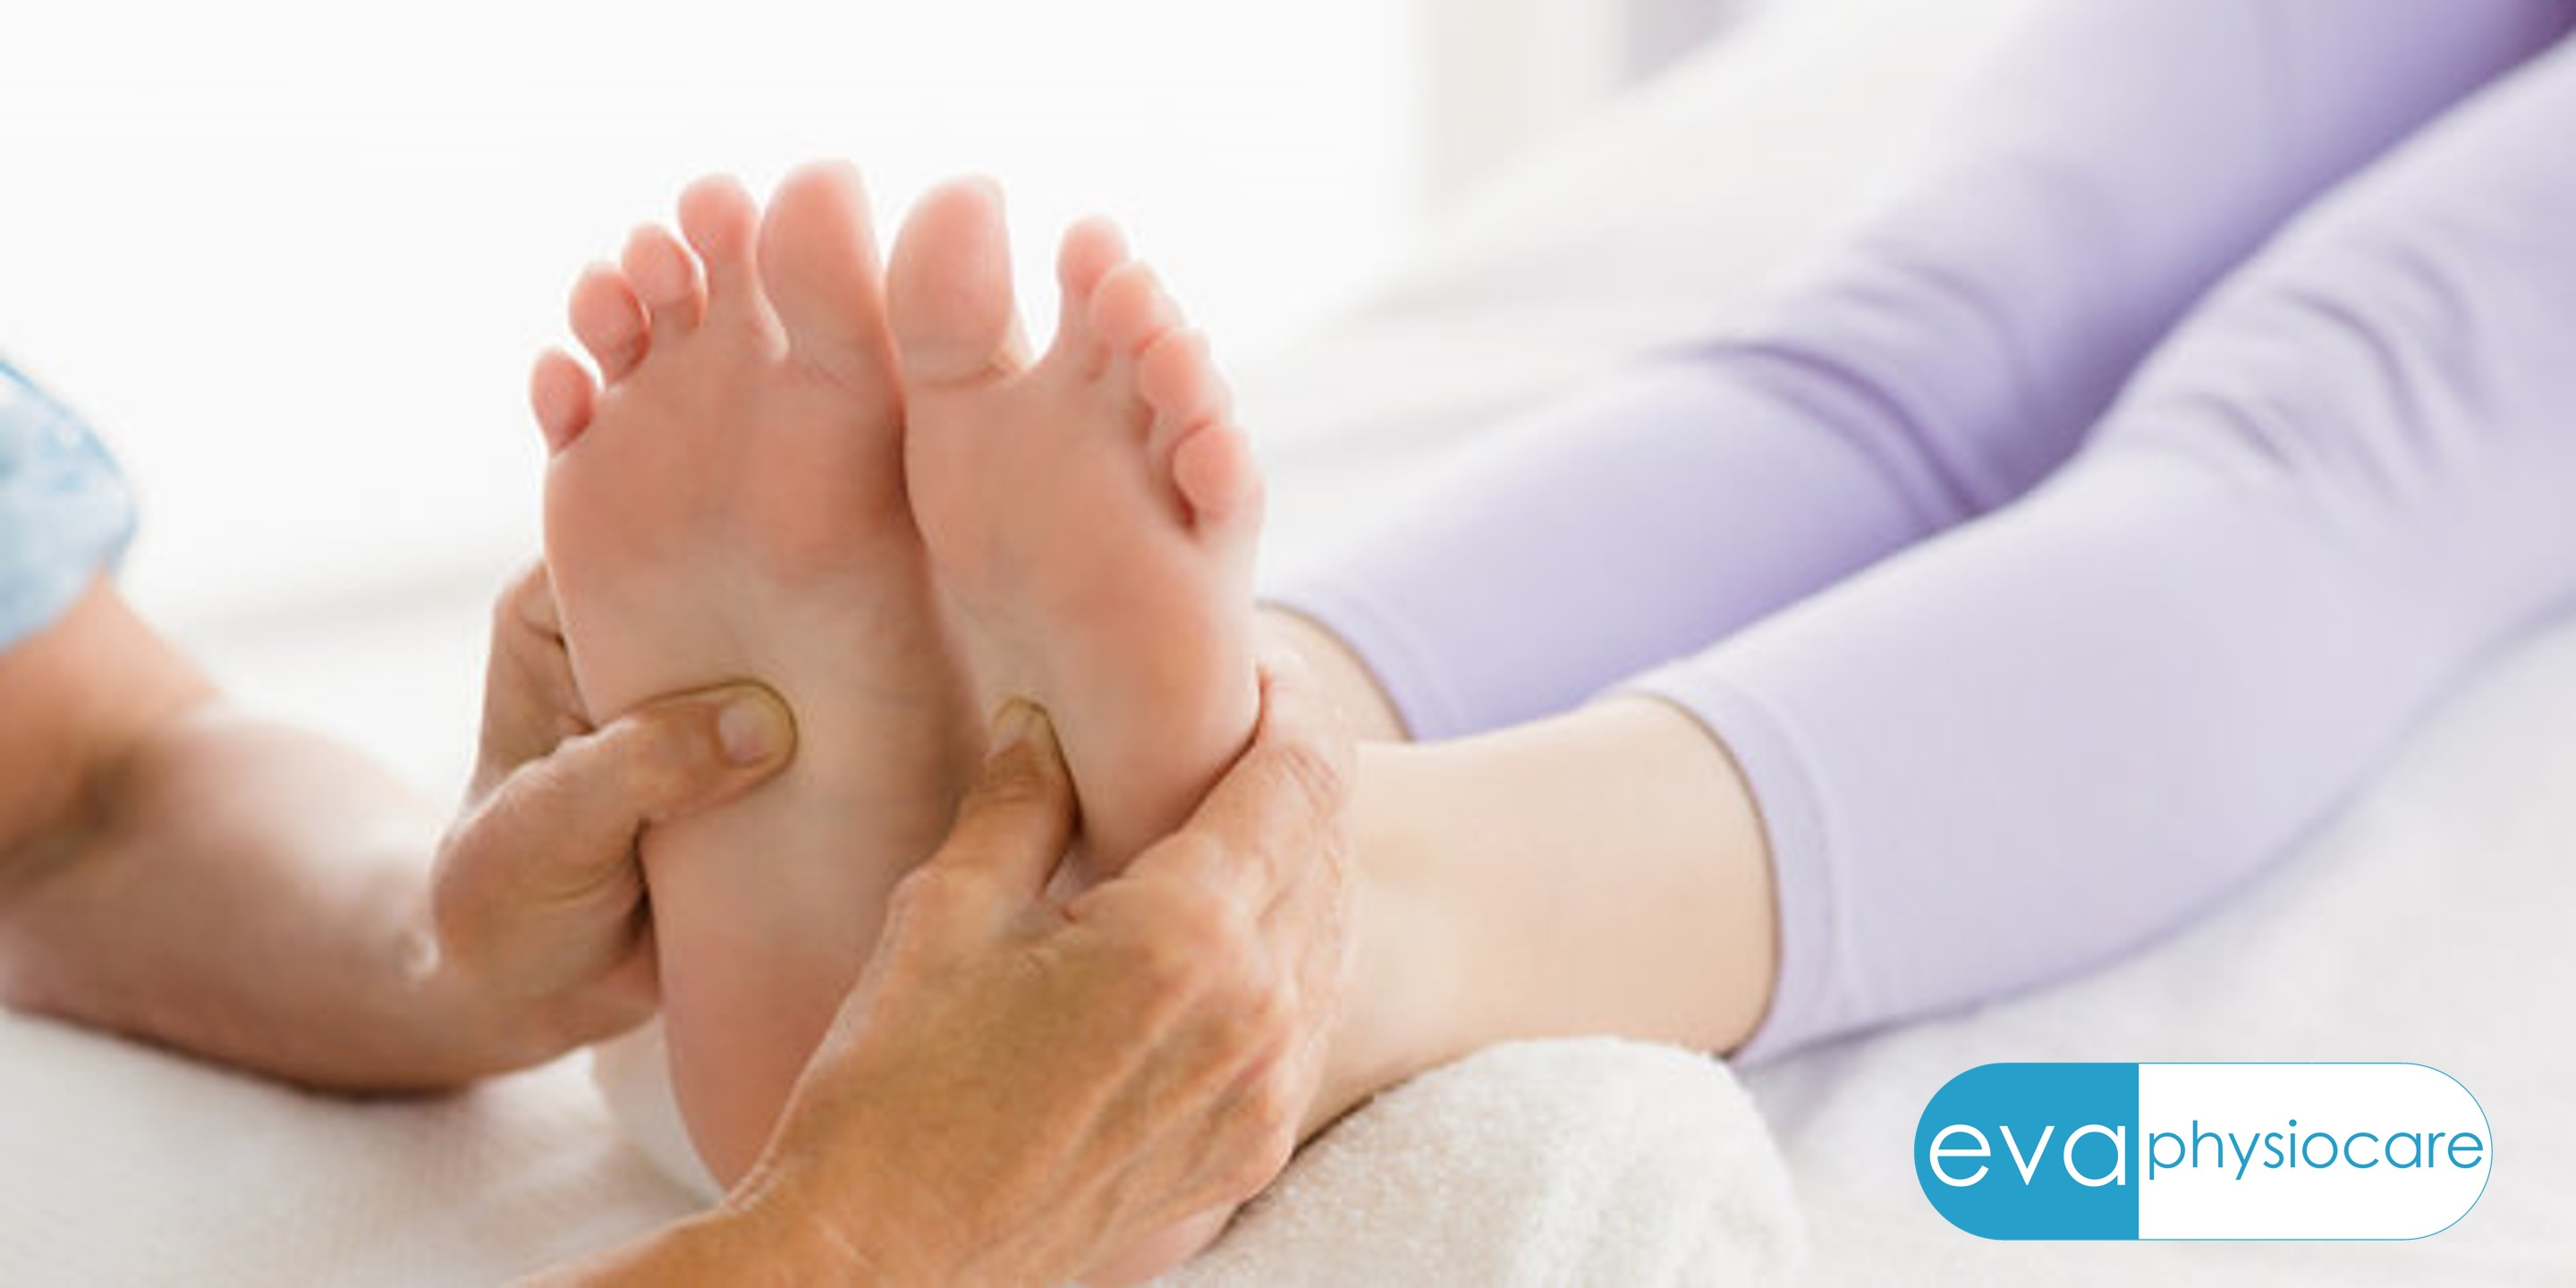 Treating Diabetic Neuropathy with Physiotherapy and Nutrition Therapy